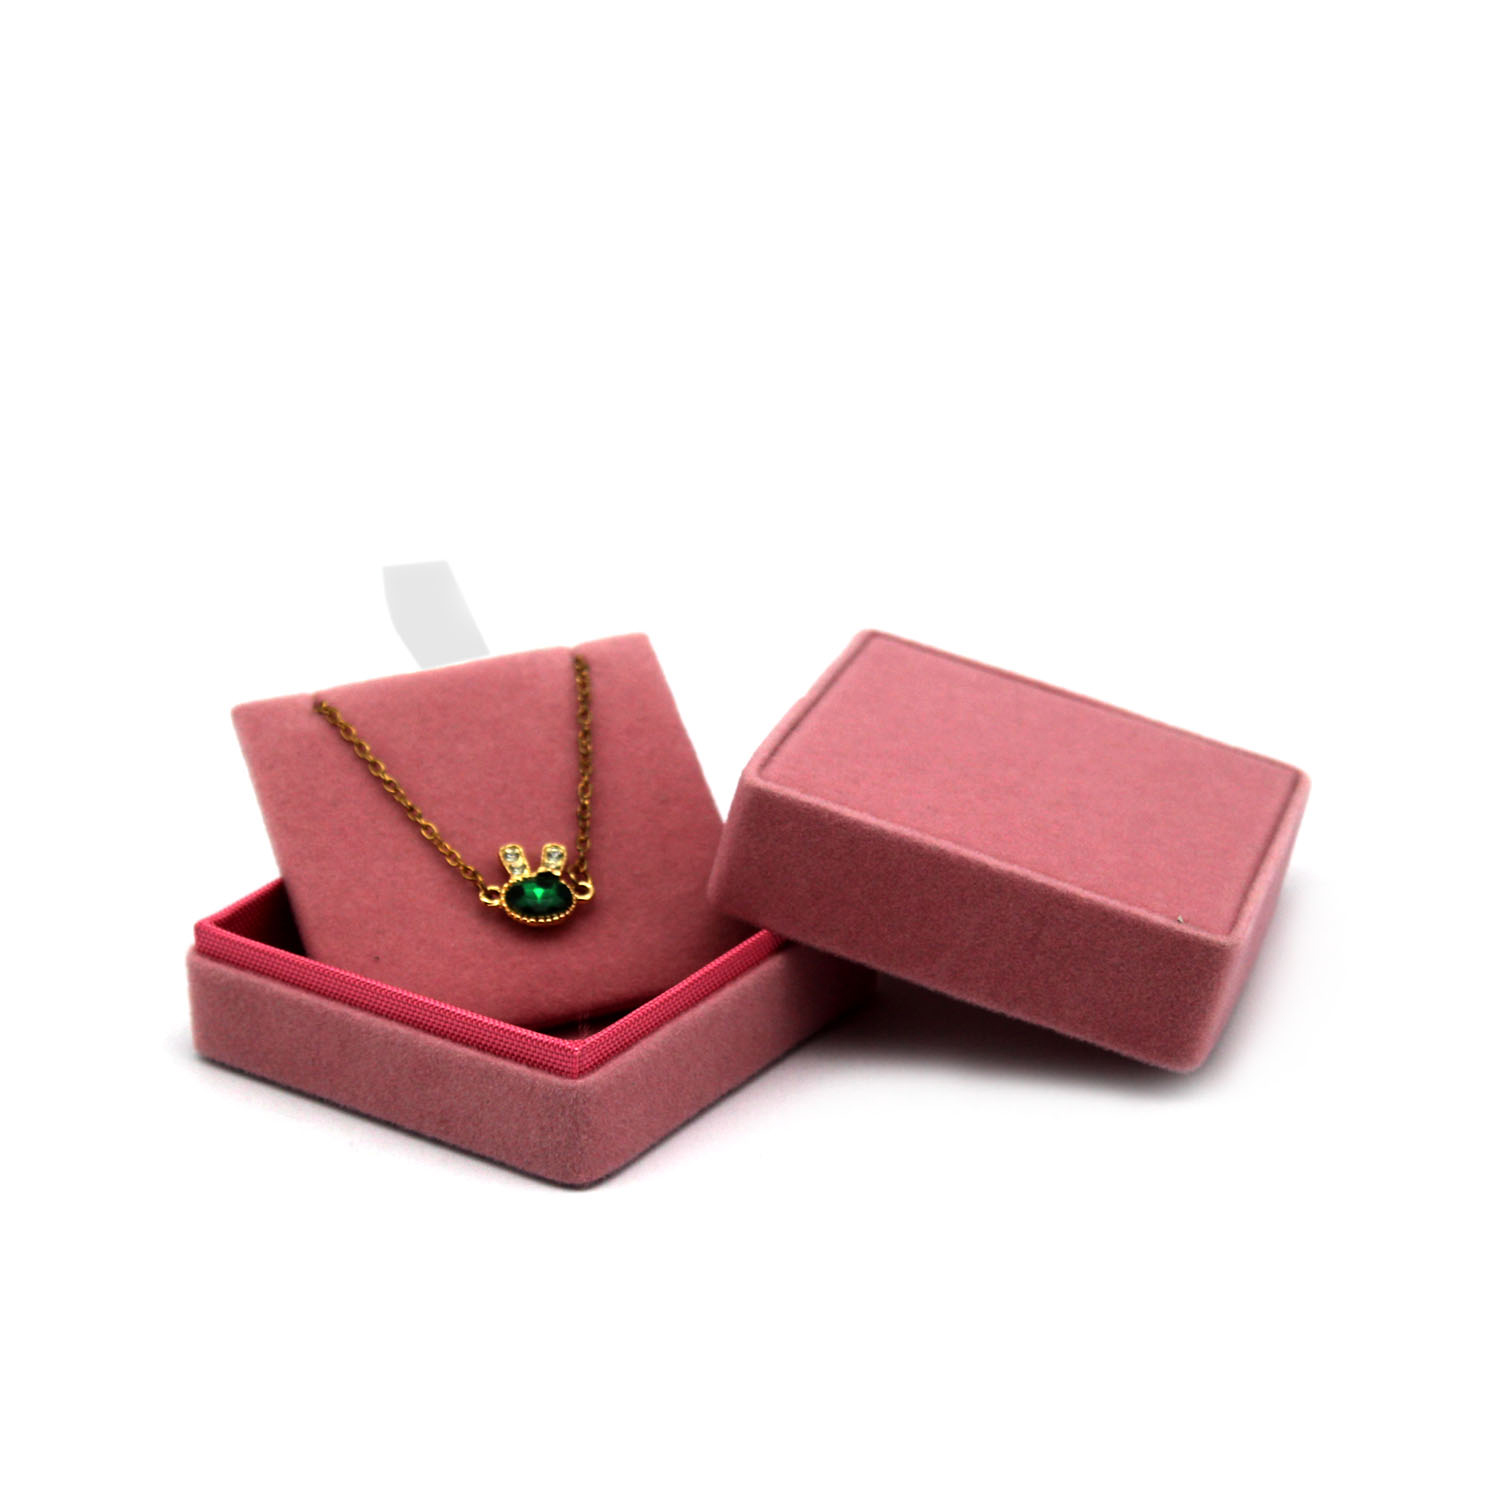 mirror box  velvet  custom logo   earring organizer  ring box  leather jewelry packaging box